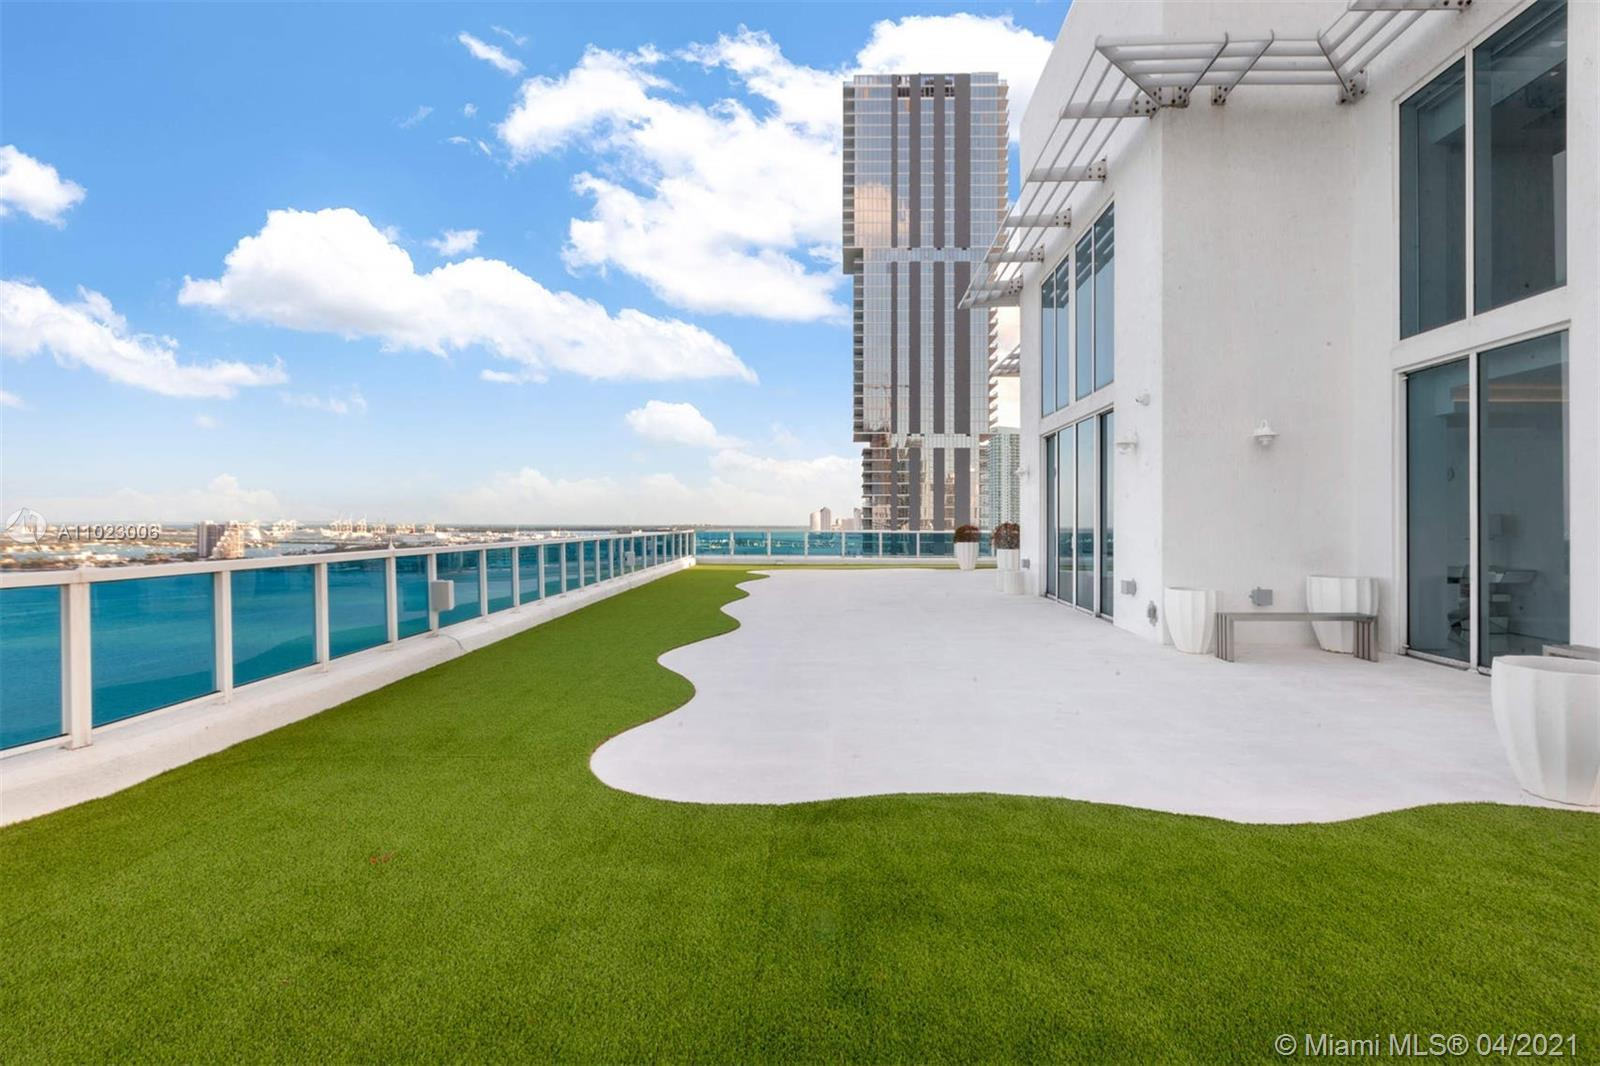 Step into a one-of-a-kind Penthouse, A 2 STORY HOME ON A ROOFTOP, in Miami's Edgewater neighborhood.